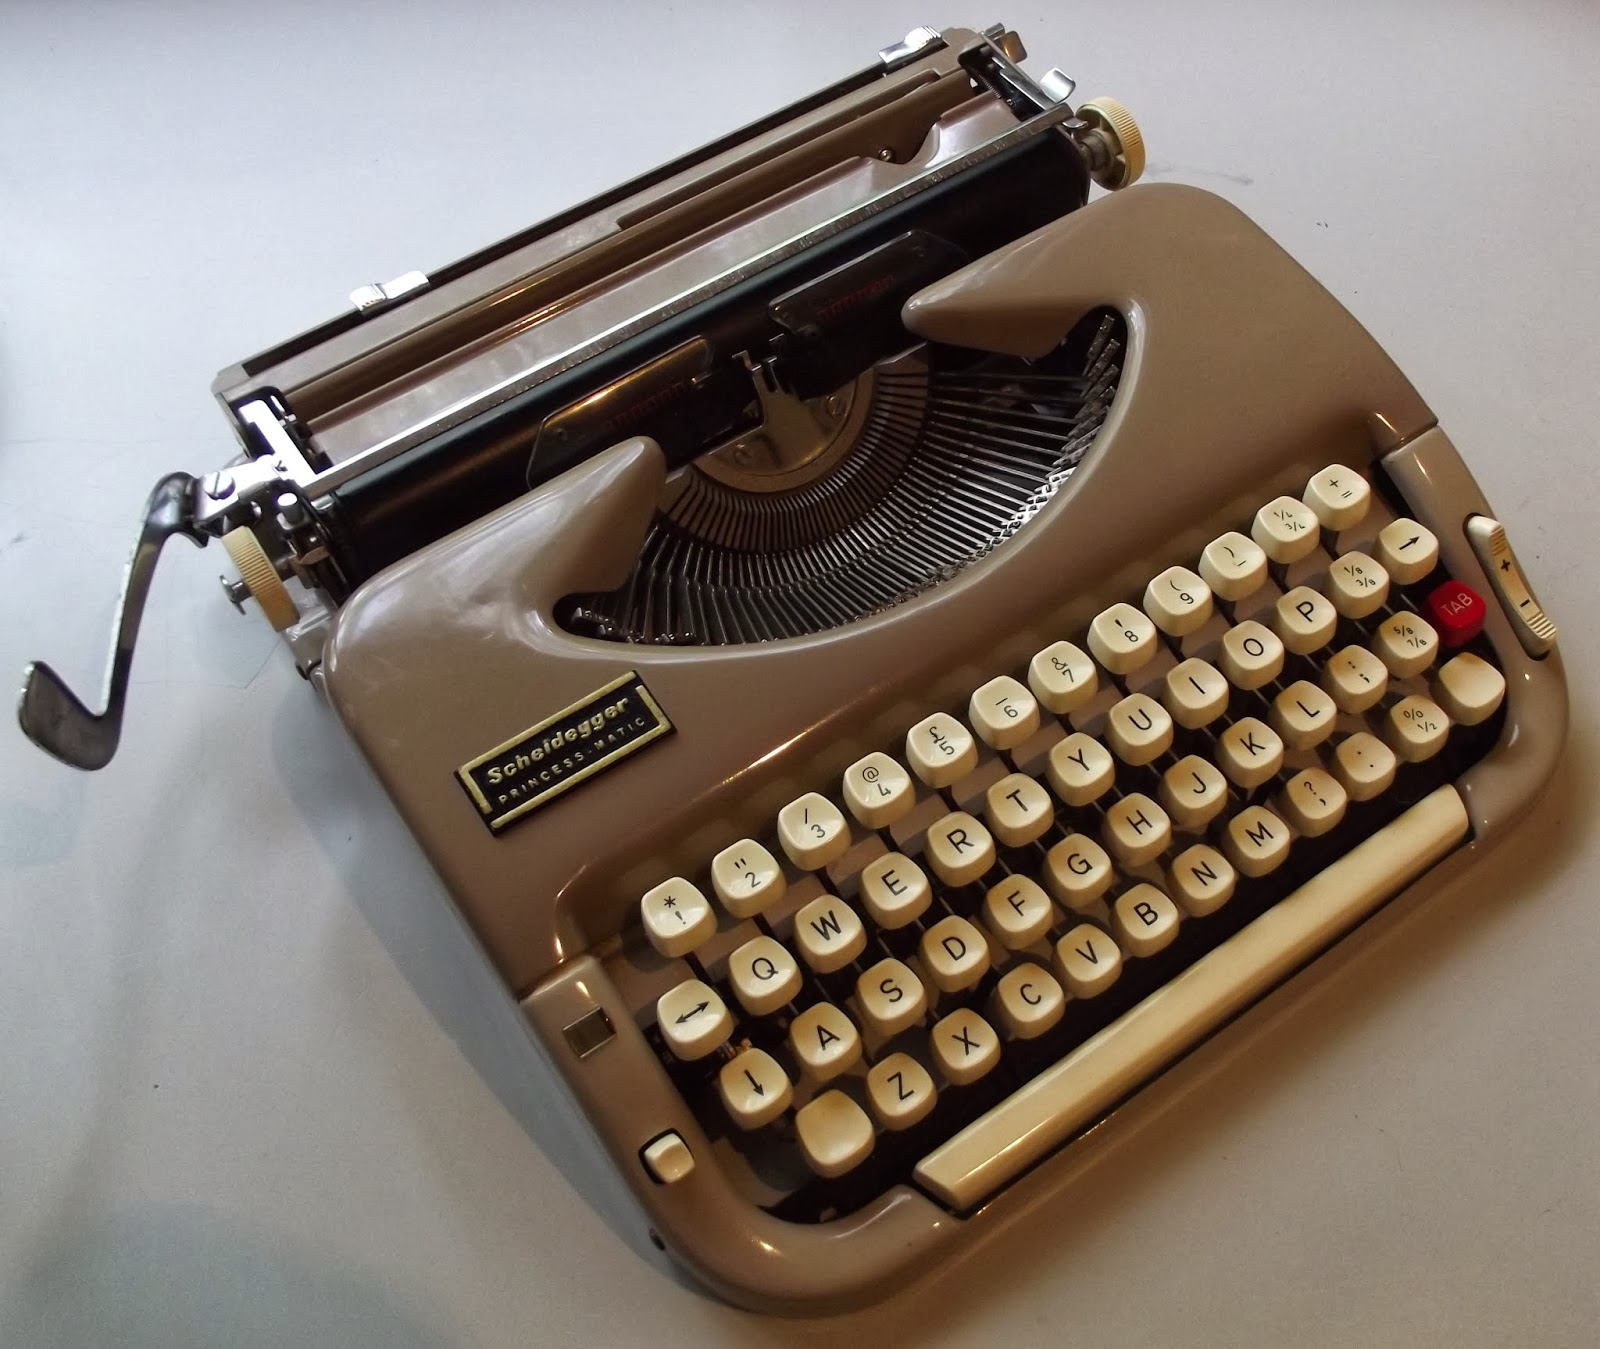 Oz.Typewriter: Willy Scheidegger Typewriters, The Typomat